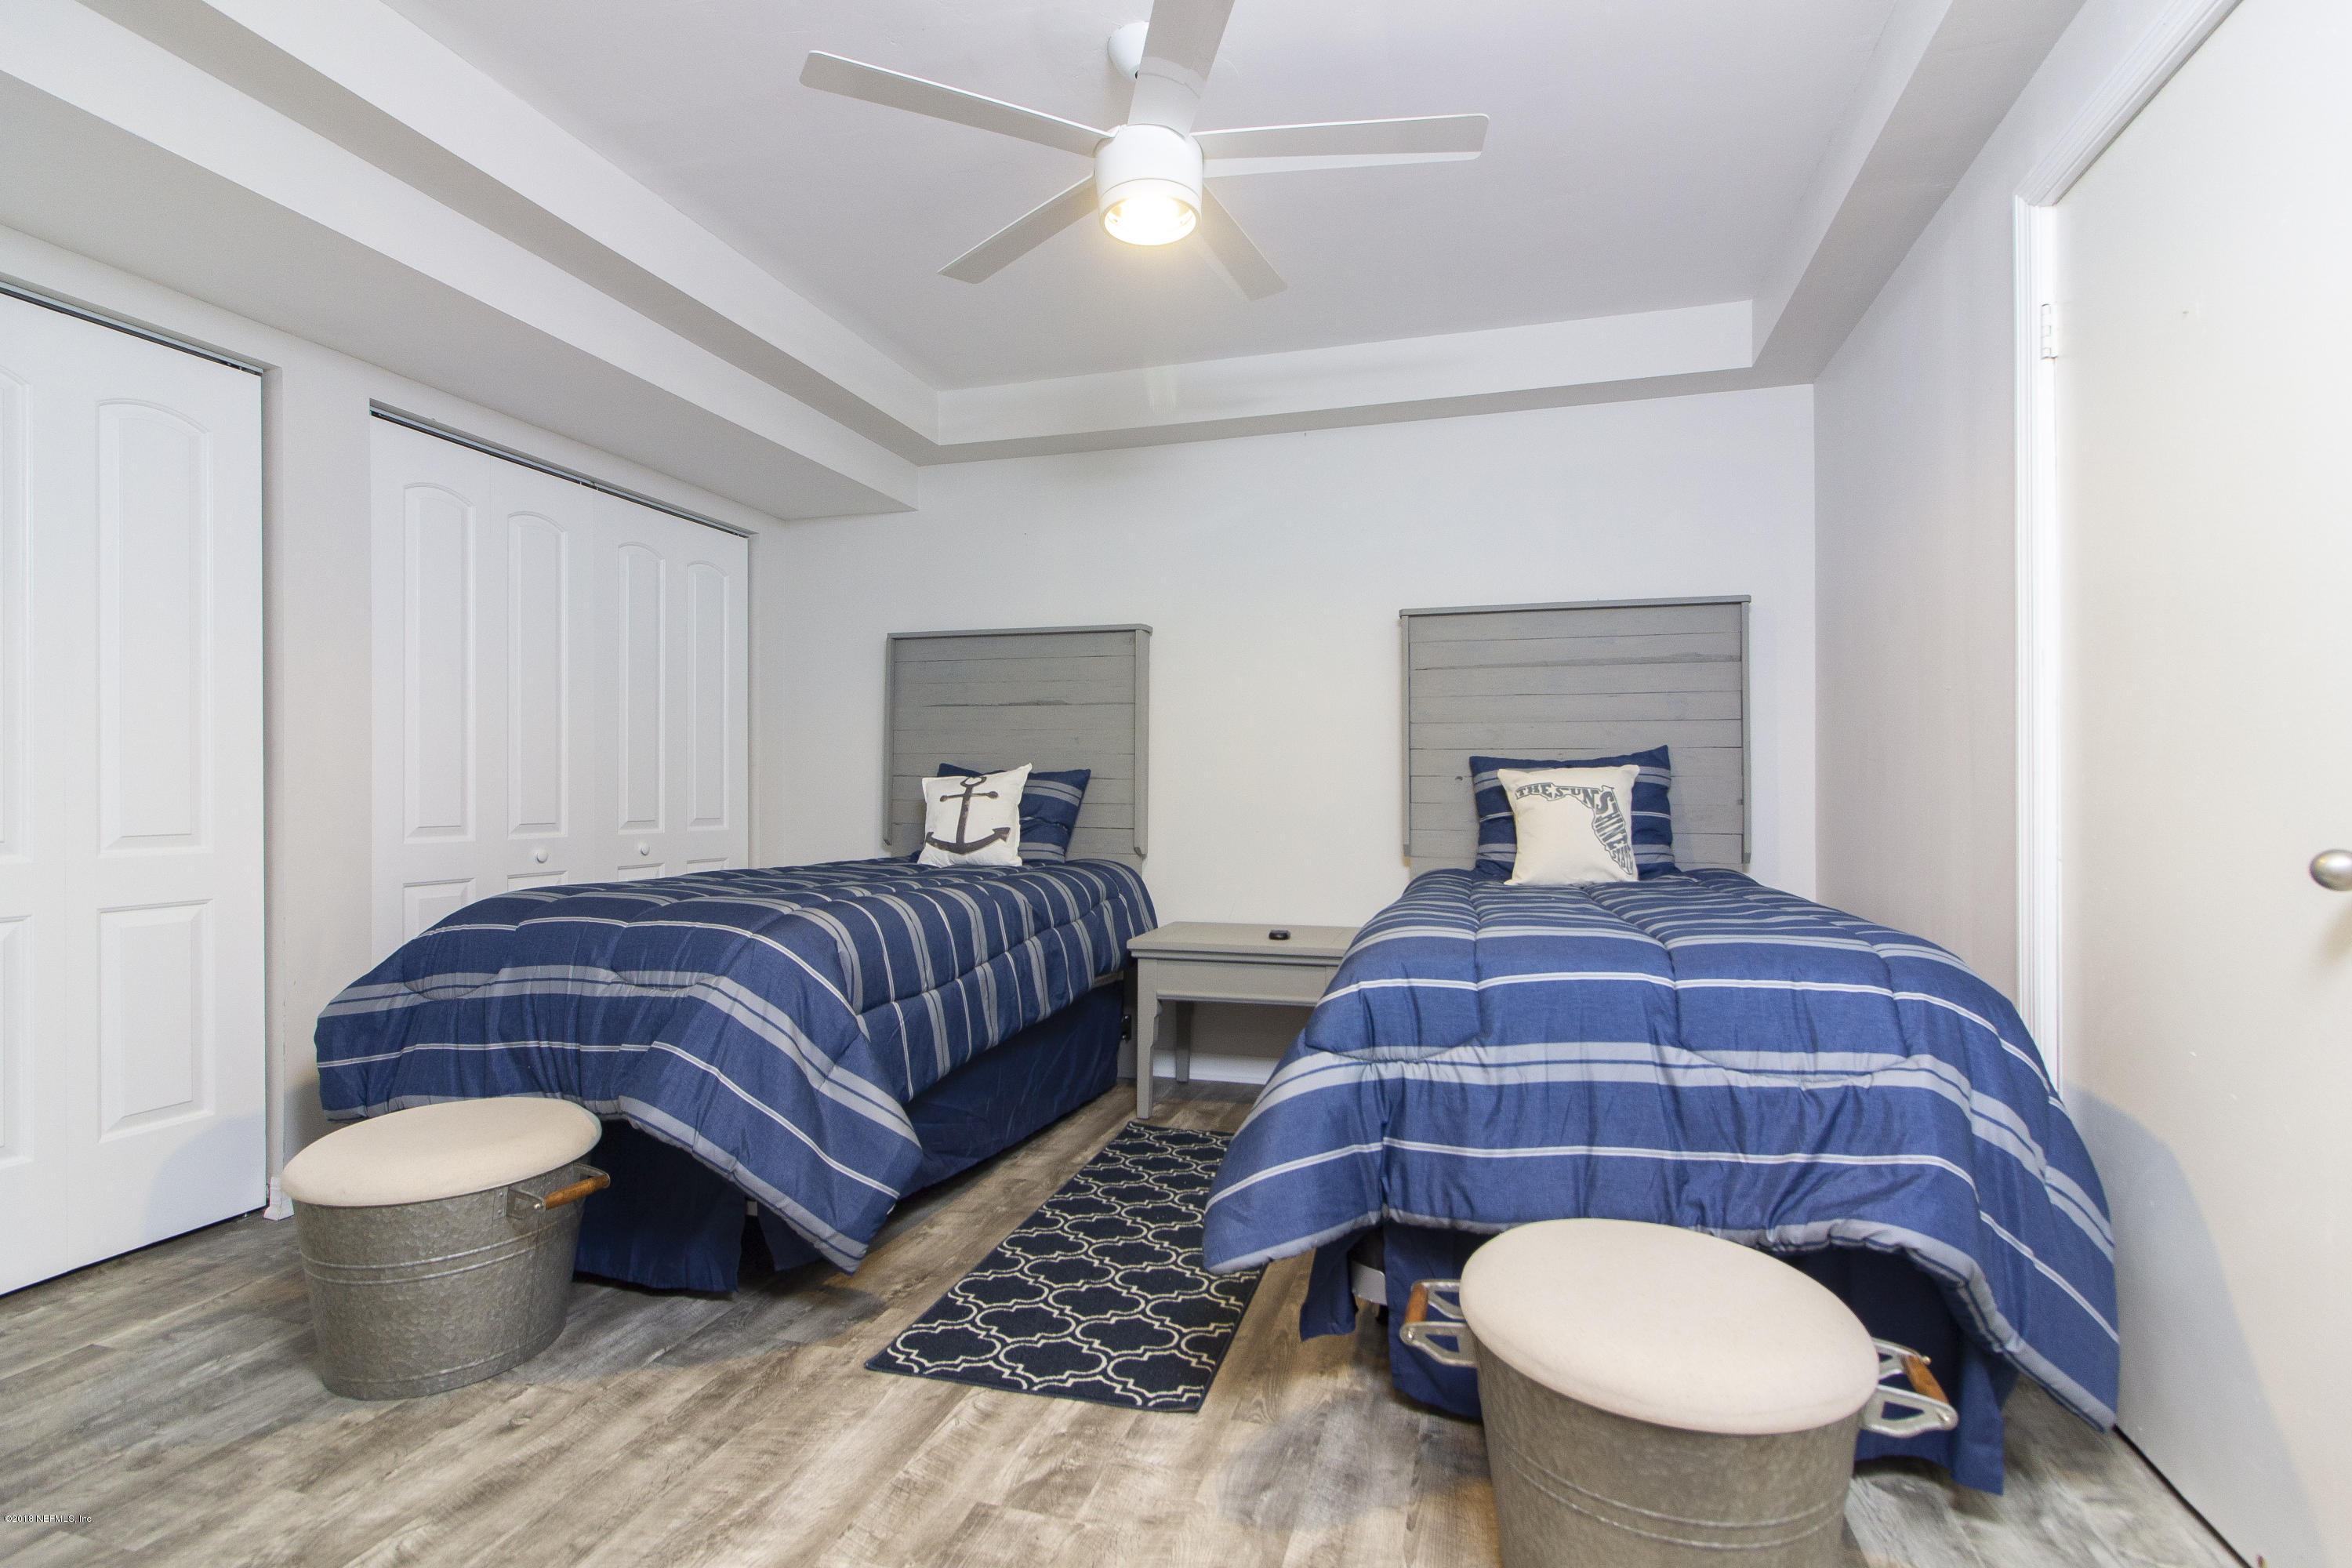 3220 HARBOR, ST AUGUSTINE, FLORIDA 32084, 3 Bedrooms Bedrooms, ,3 BathroomsBathrooms,Residential - condos/townhomes,For sale,HARBOR,952440